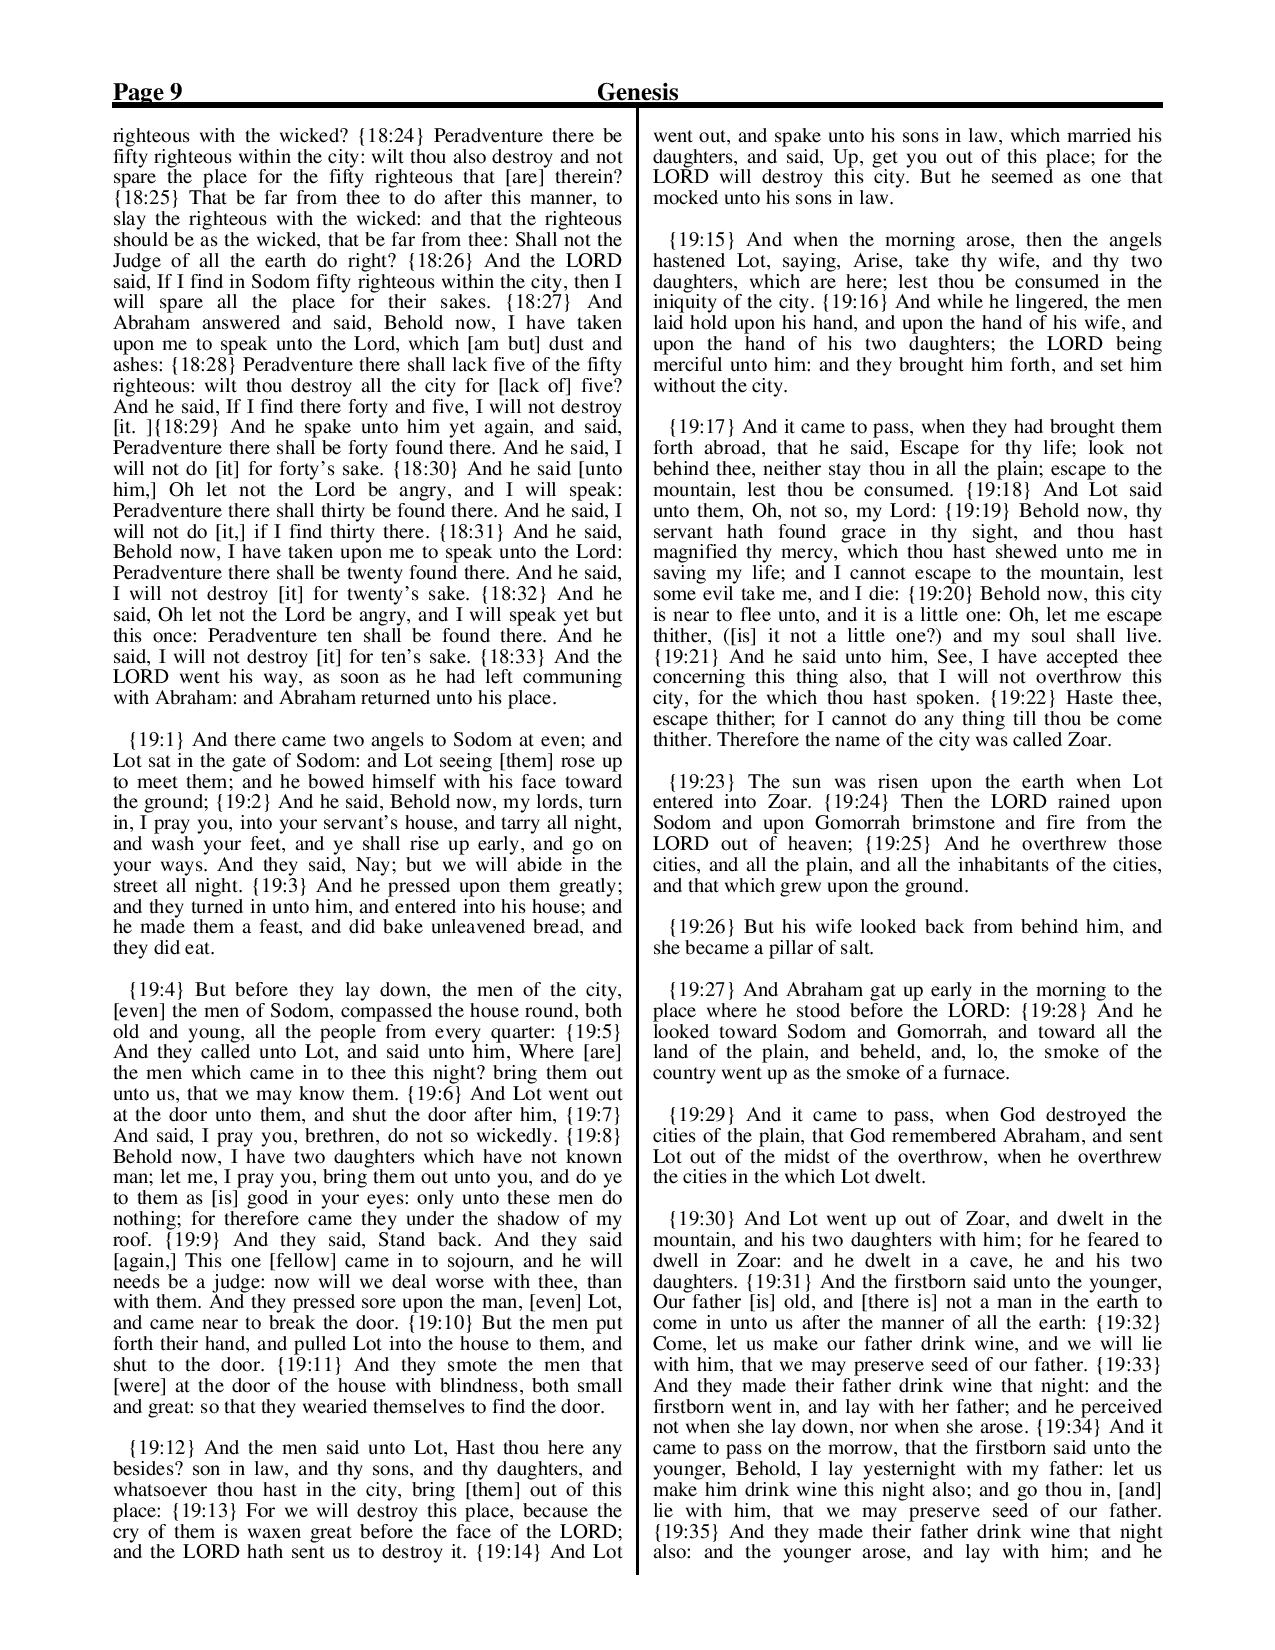 King-James-Bible-KJV-Bible-PDF-page-030